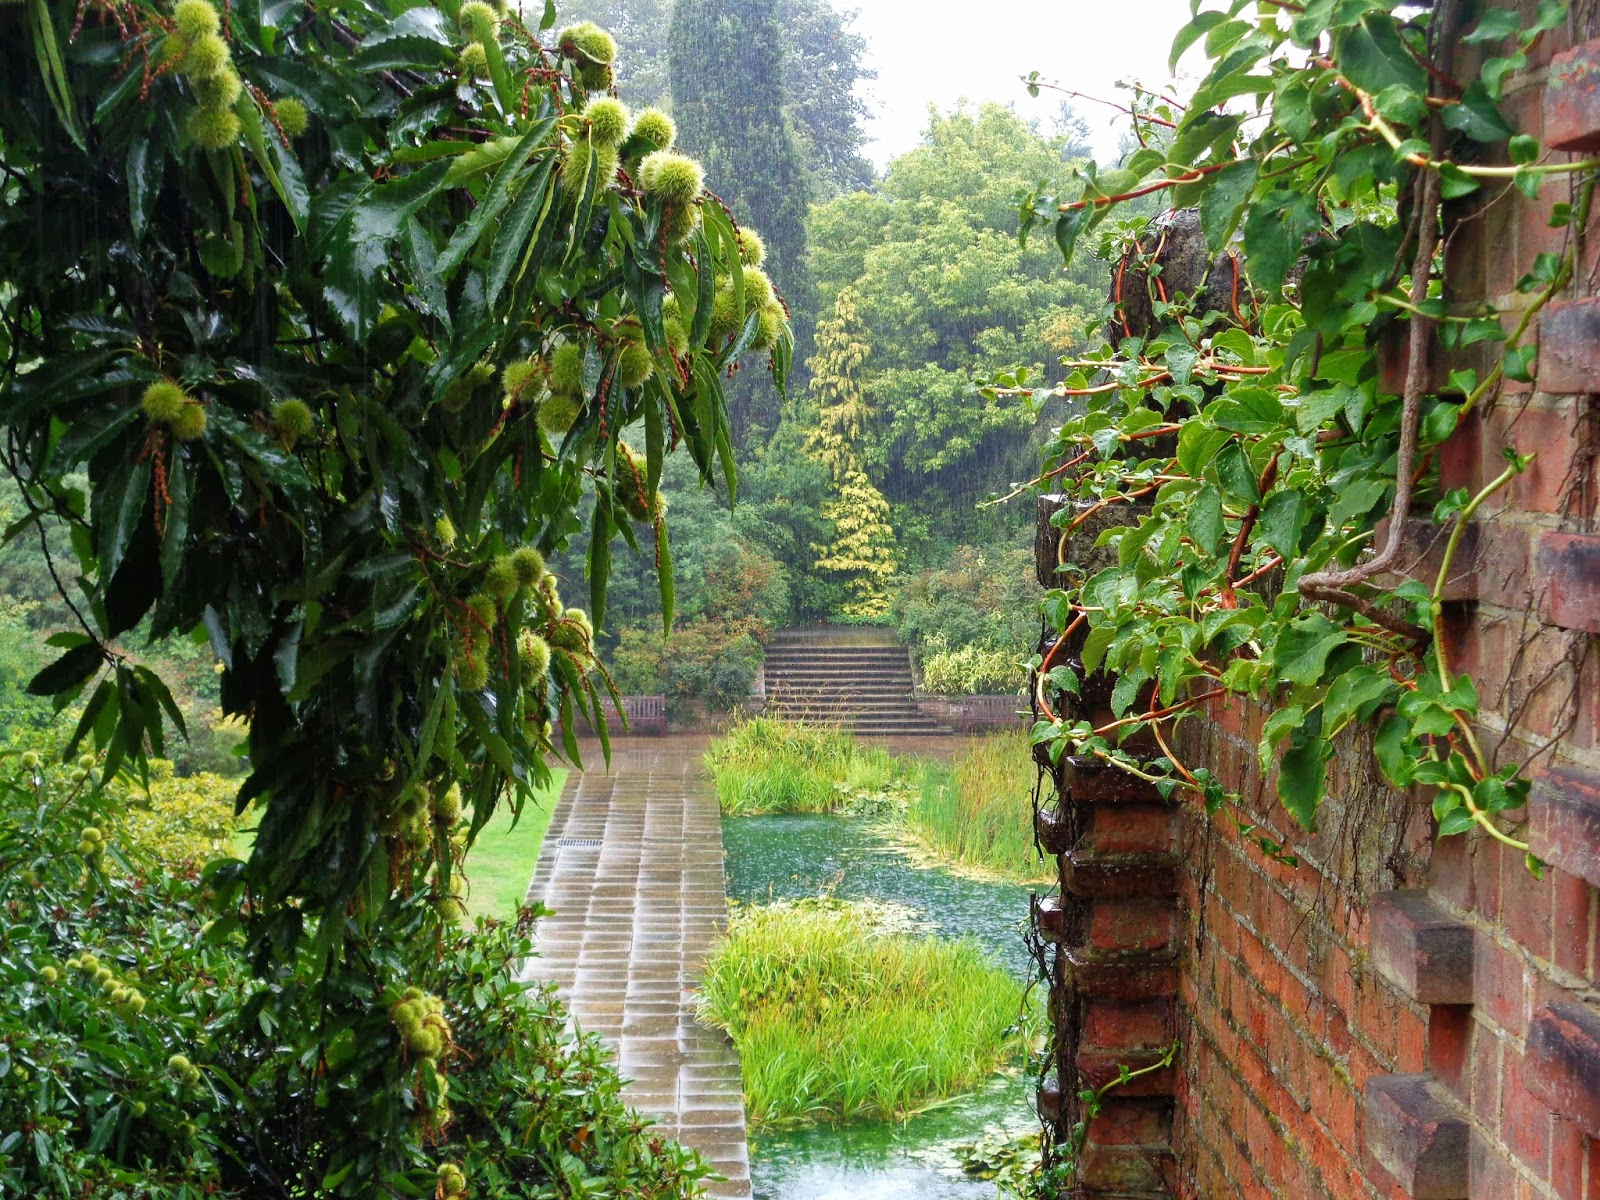 Photo Diary: Hampstead Heath Hill Gardens and Pergola in the Rain